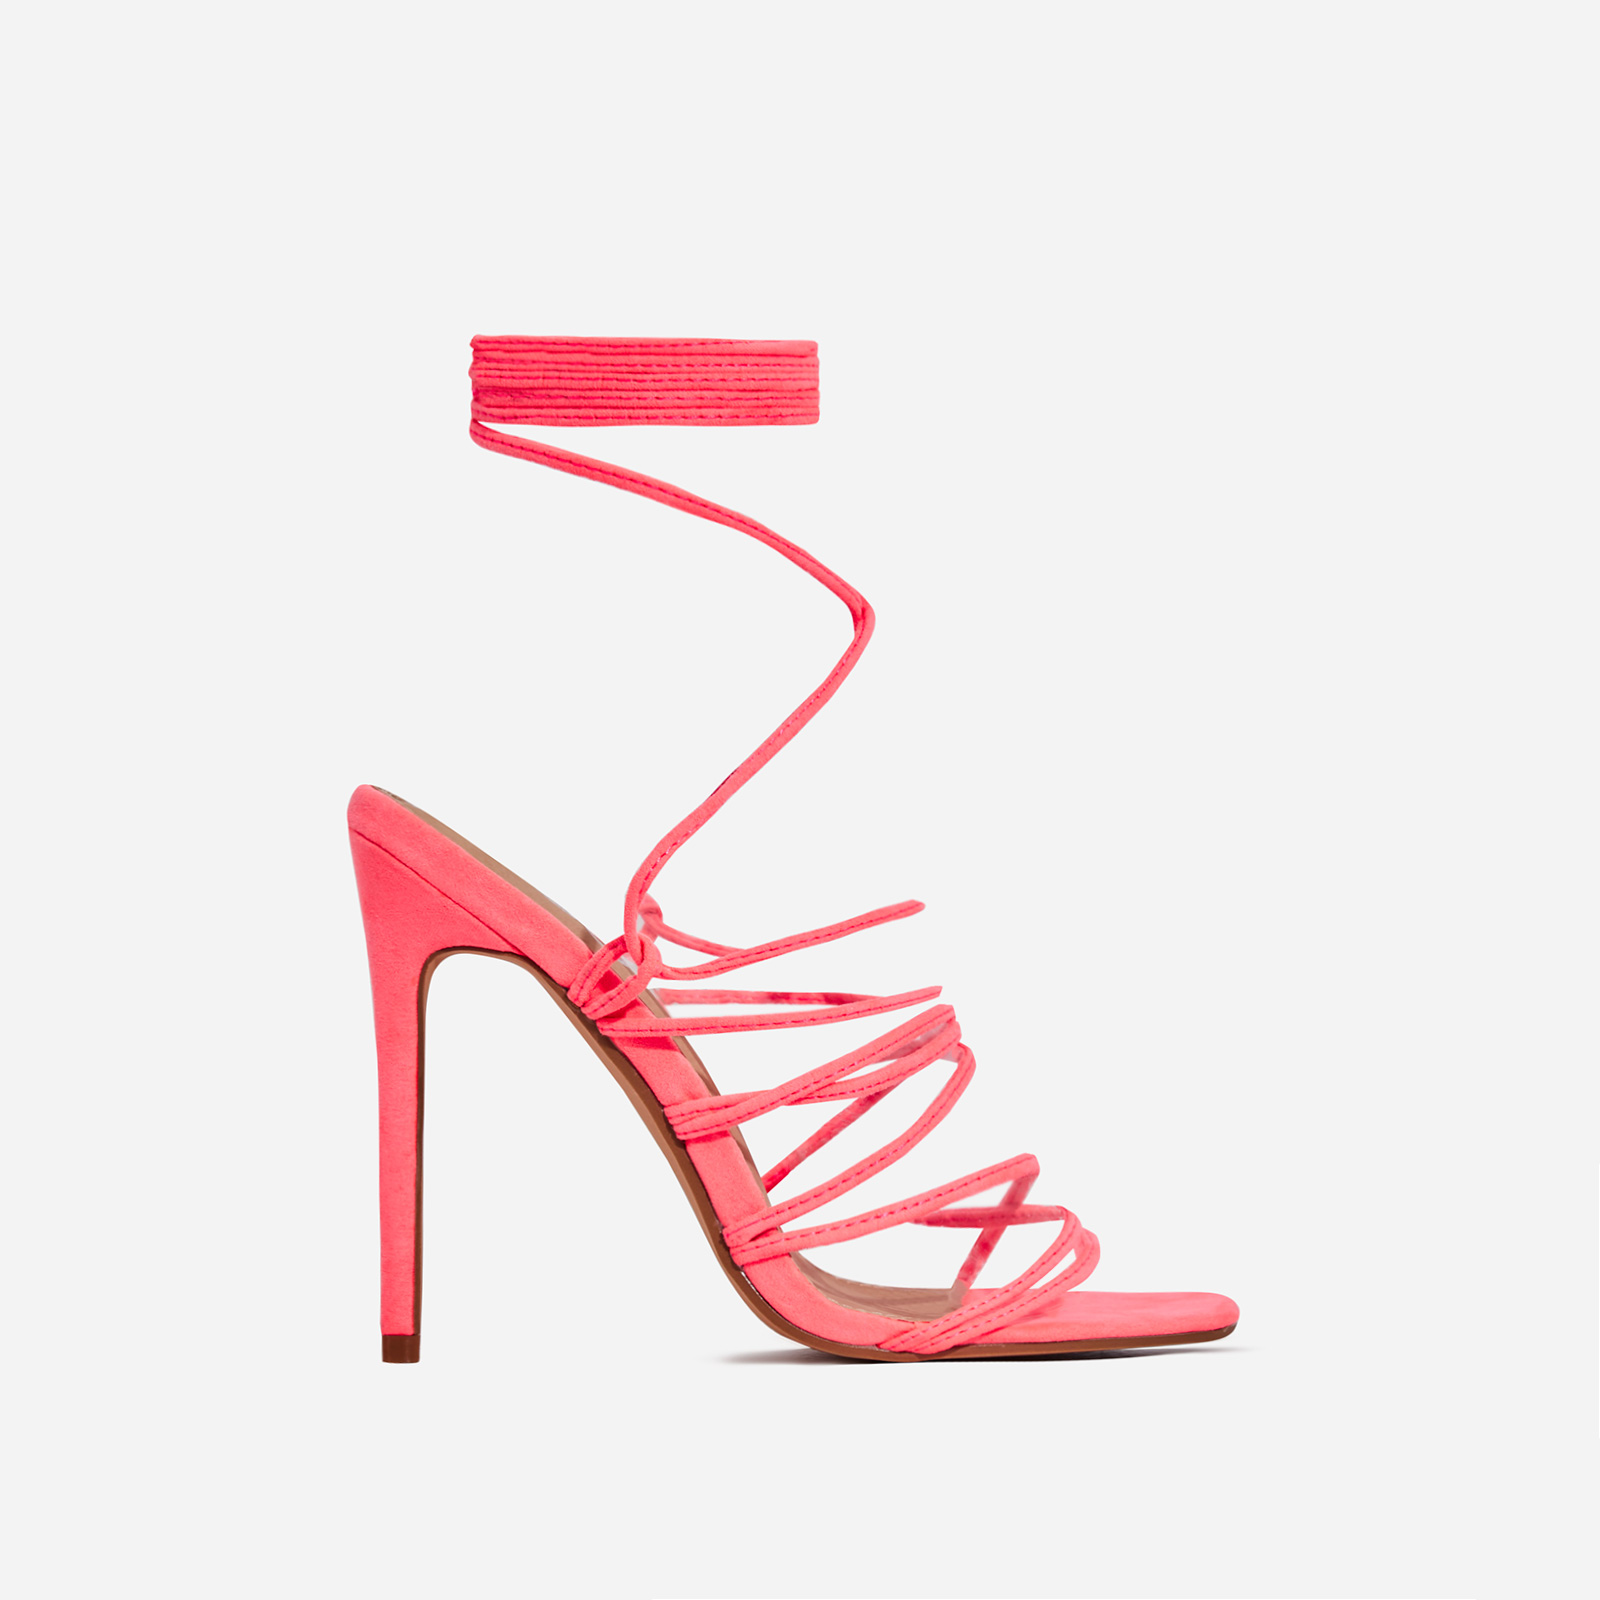 Revel Lace Up Square Toe Heel In Neon Pink Faux Suede